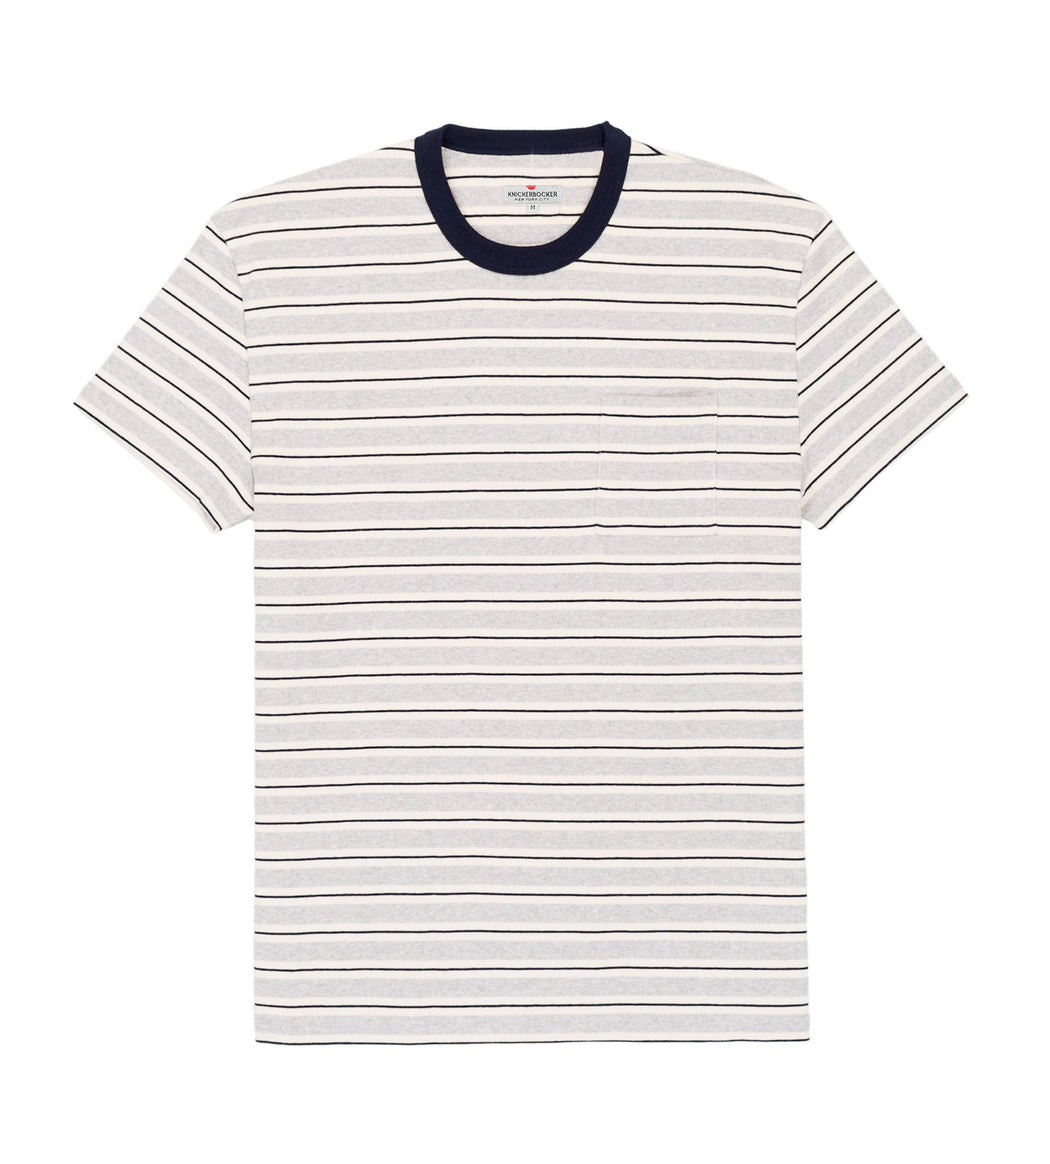 Short Sleeve Yard Tee, Basics, Knickerbocker - Felding Co